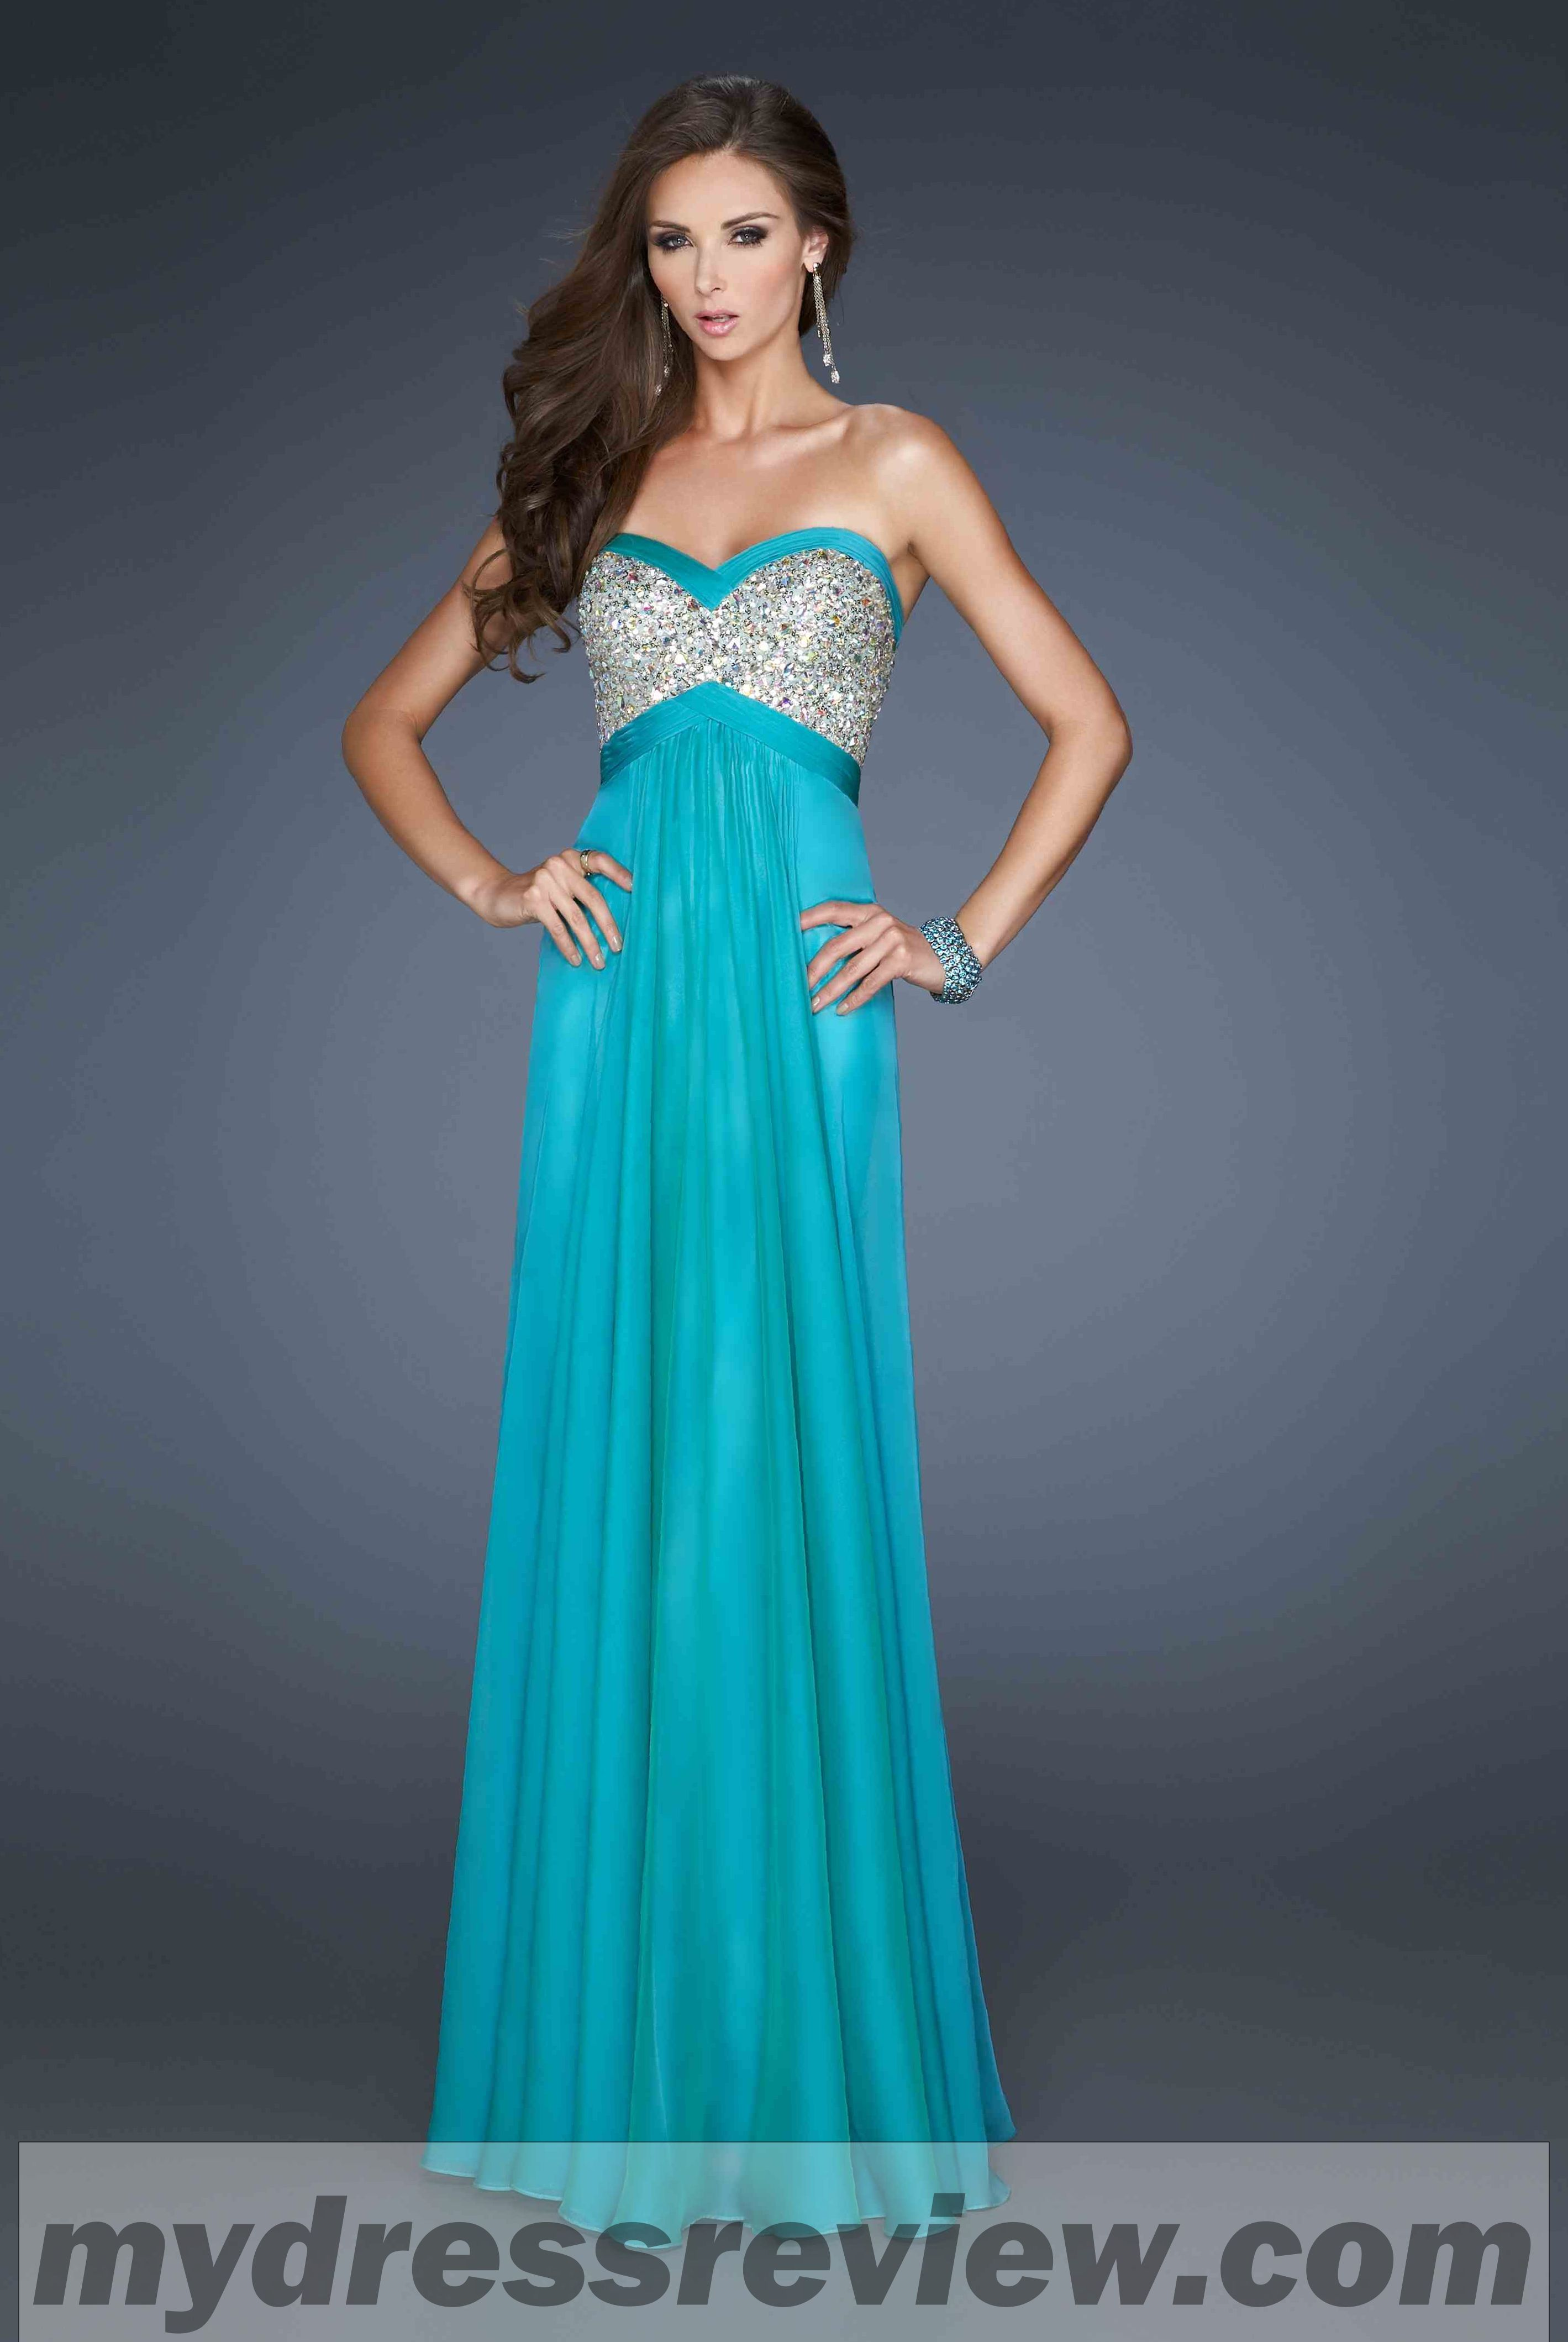 Where To Shop For Homecoming Dresses 70